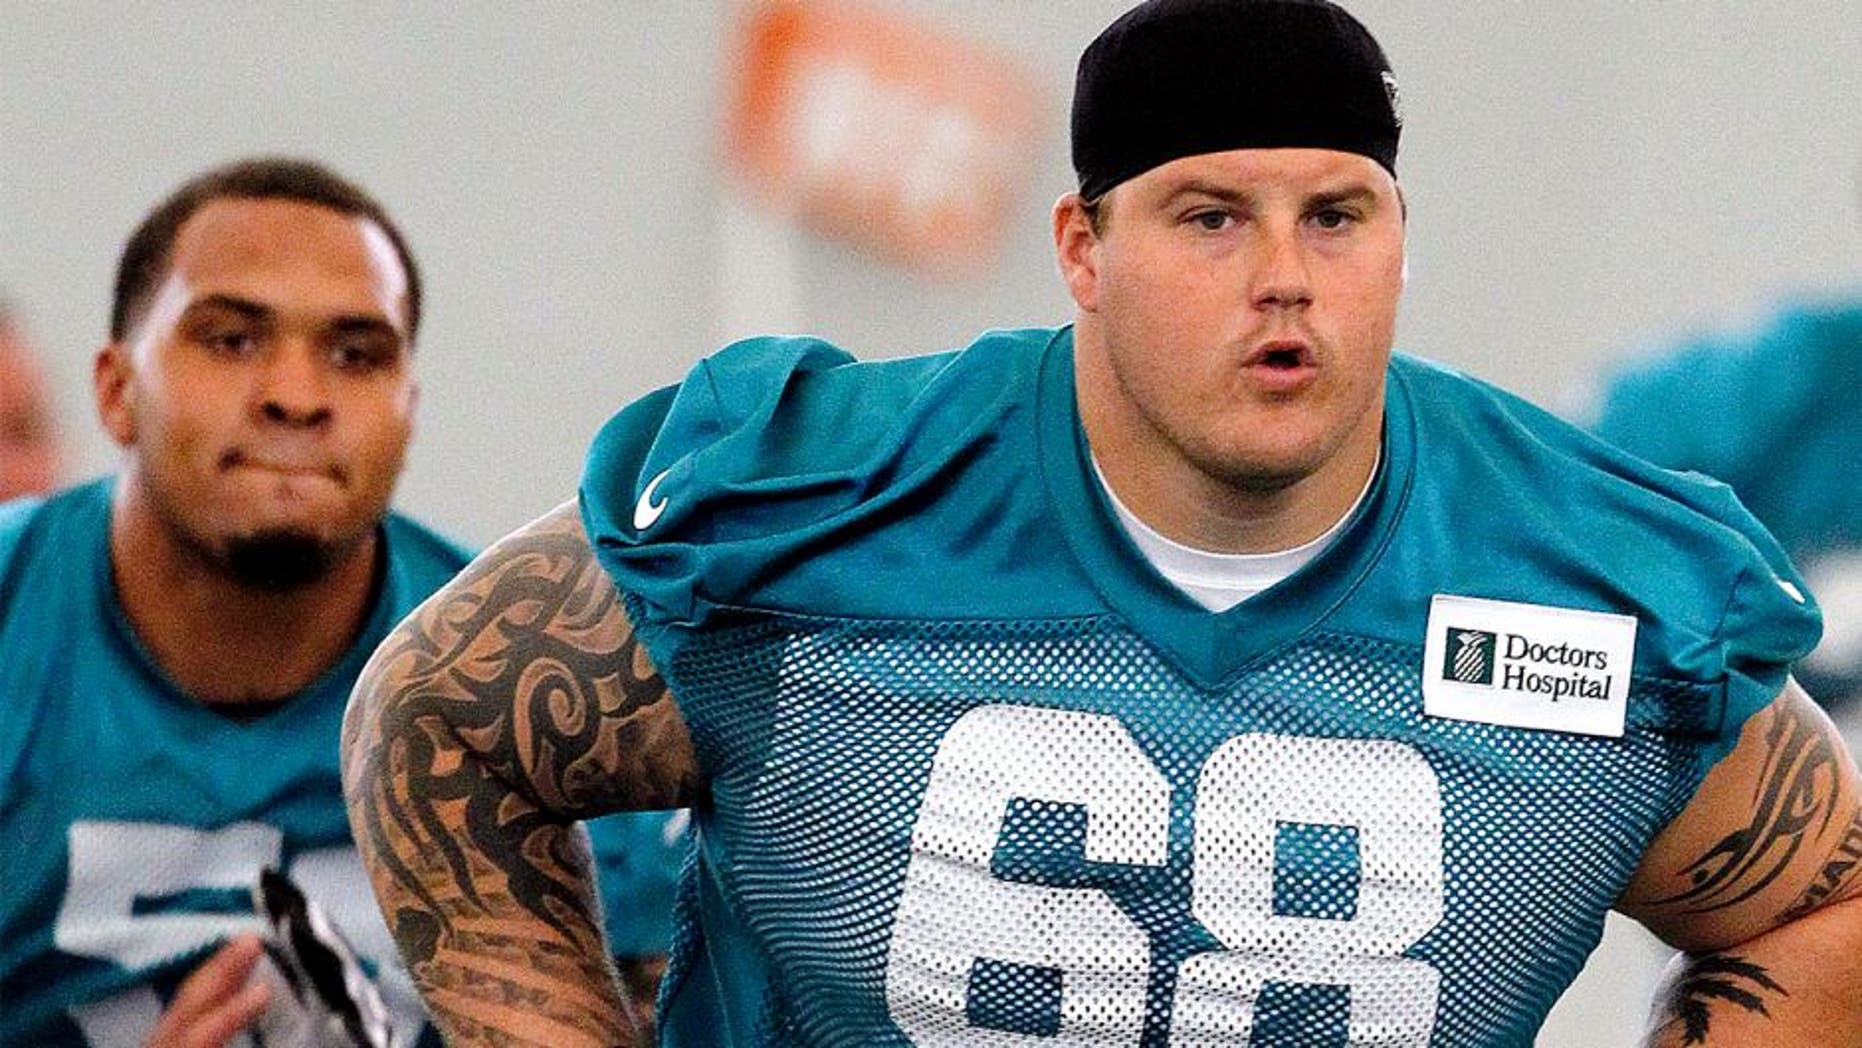 DAVIE, FL - MAY 21: Richie Incognito #68 of the Miami Dolphins runs a drill during the first team OTA on May 21, 2013 at the Miami Dolphins training facility in Davie, Florida. (Photo by Joel Auerbach/Getty Images)